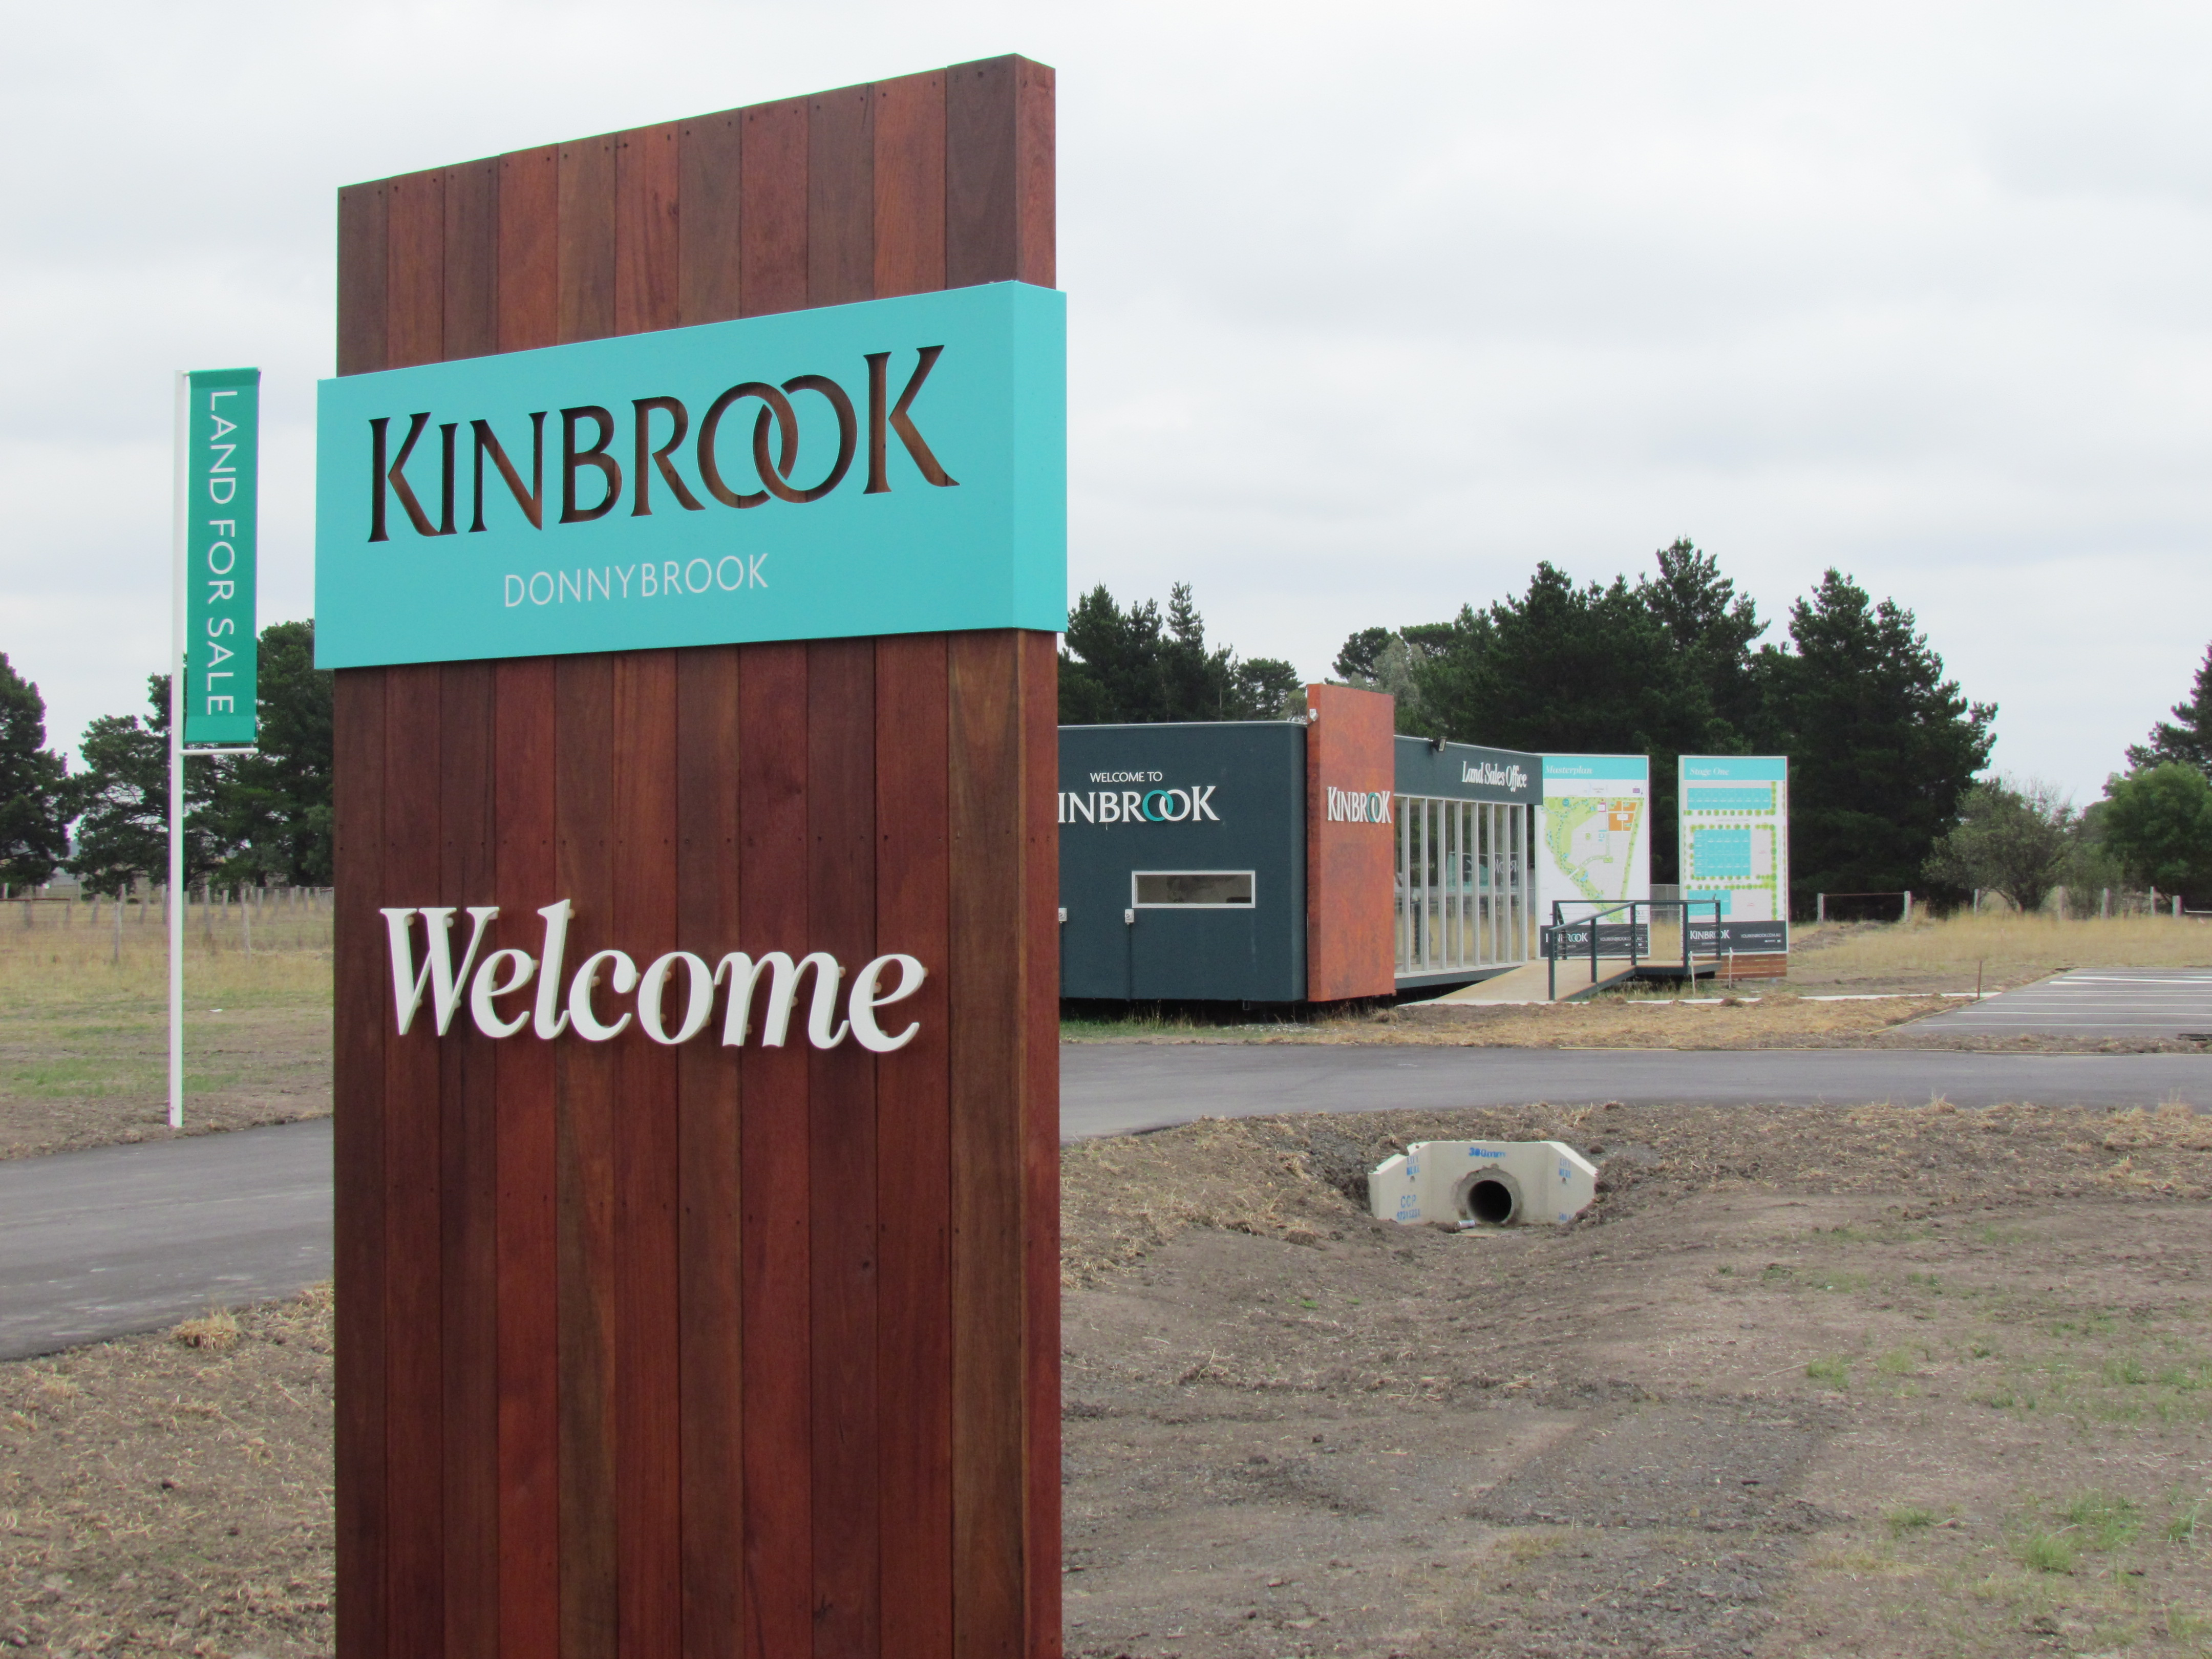 KinBrook Real Estate Development 2